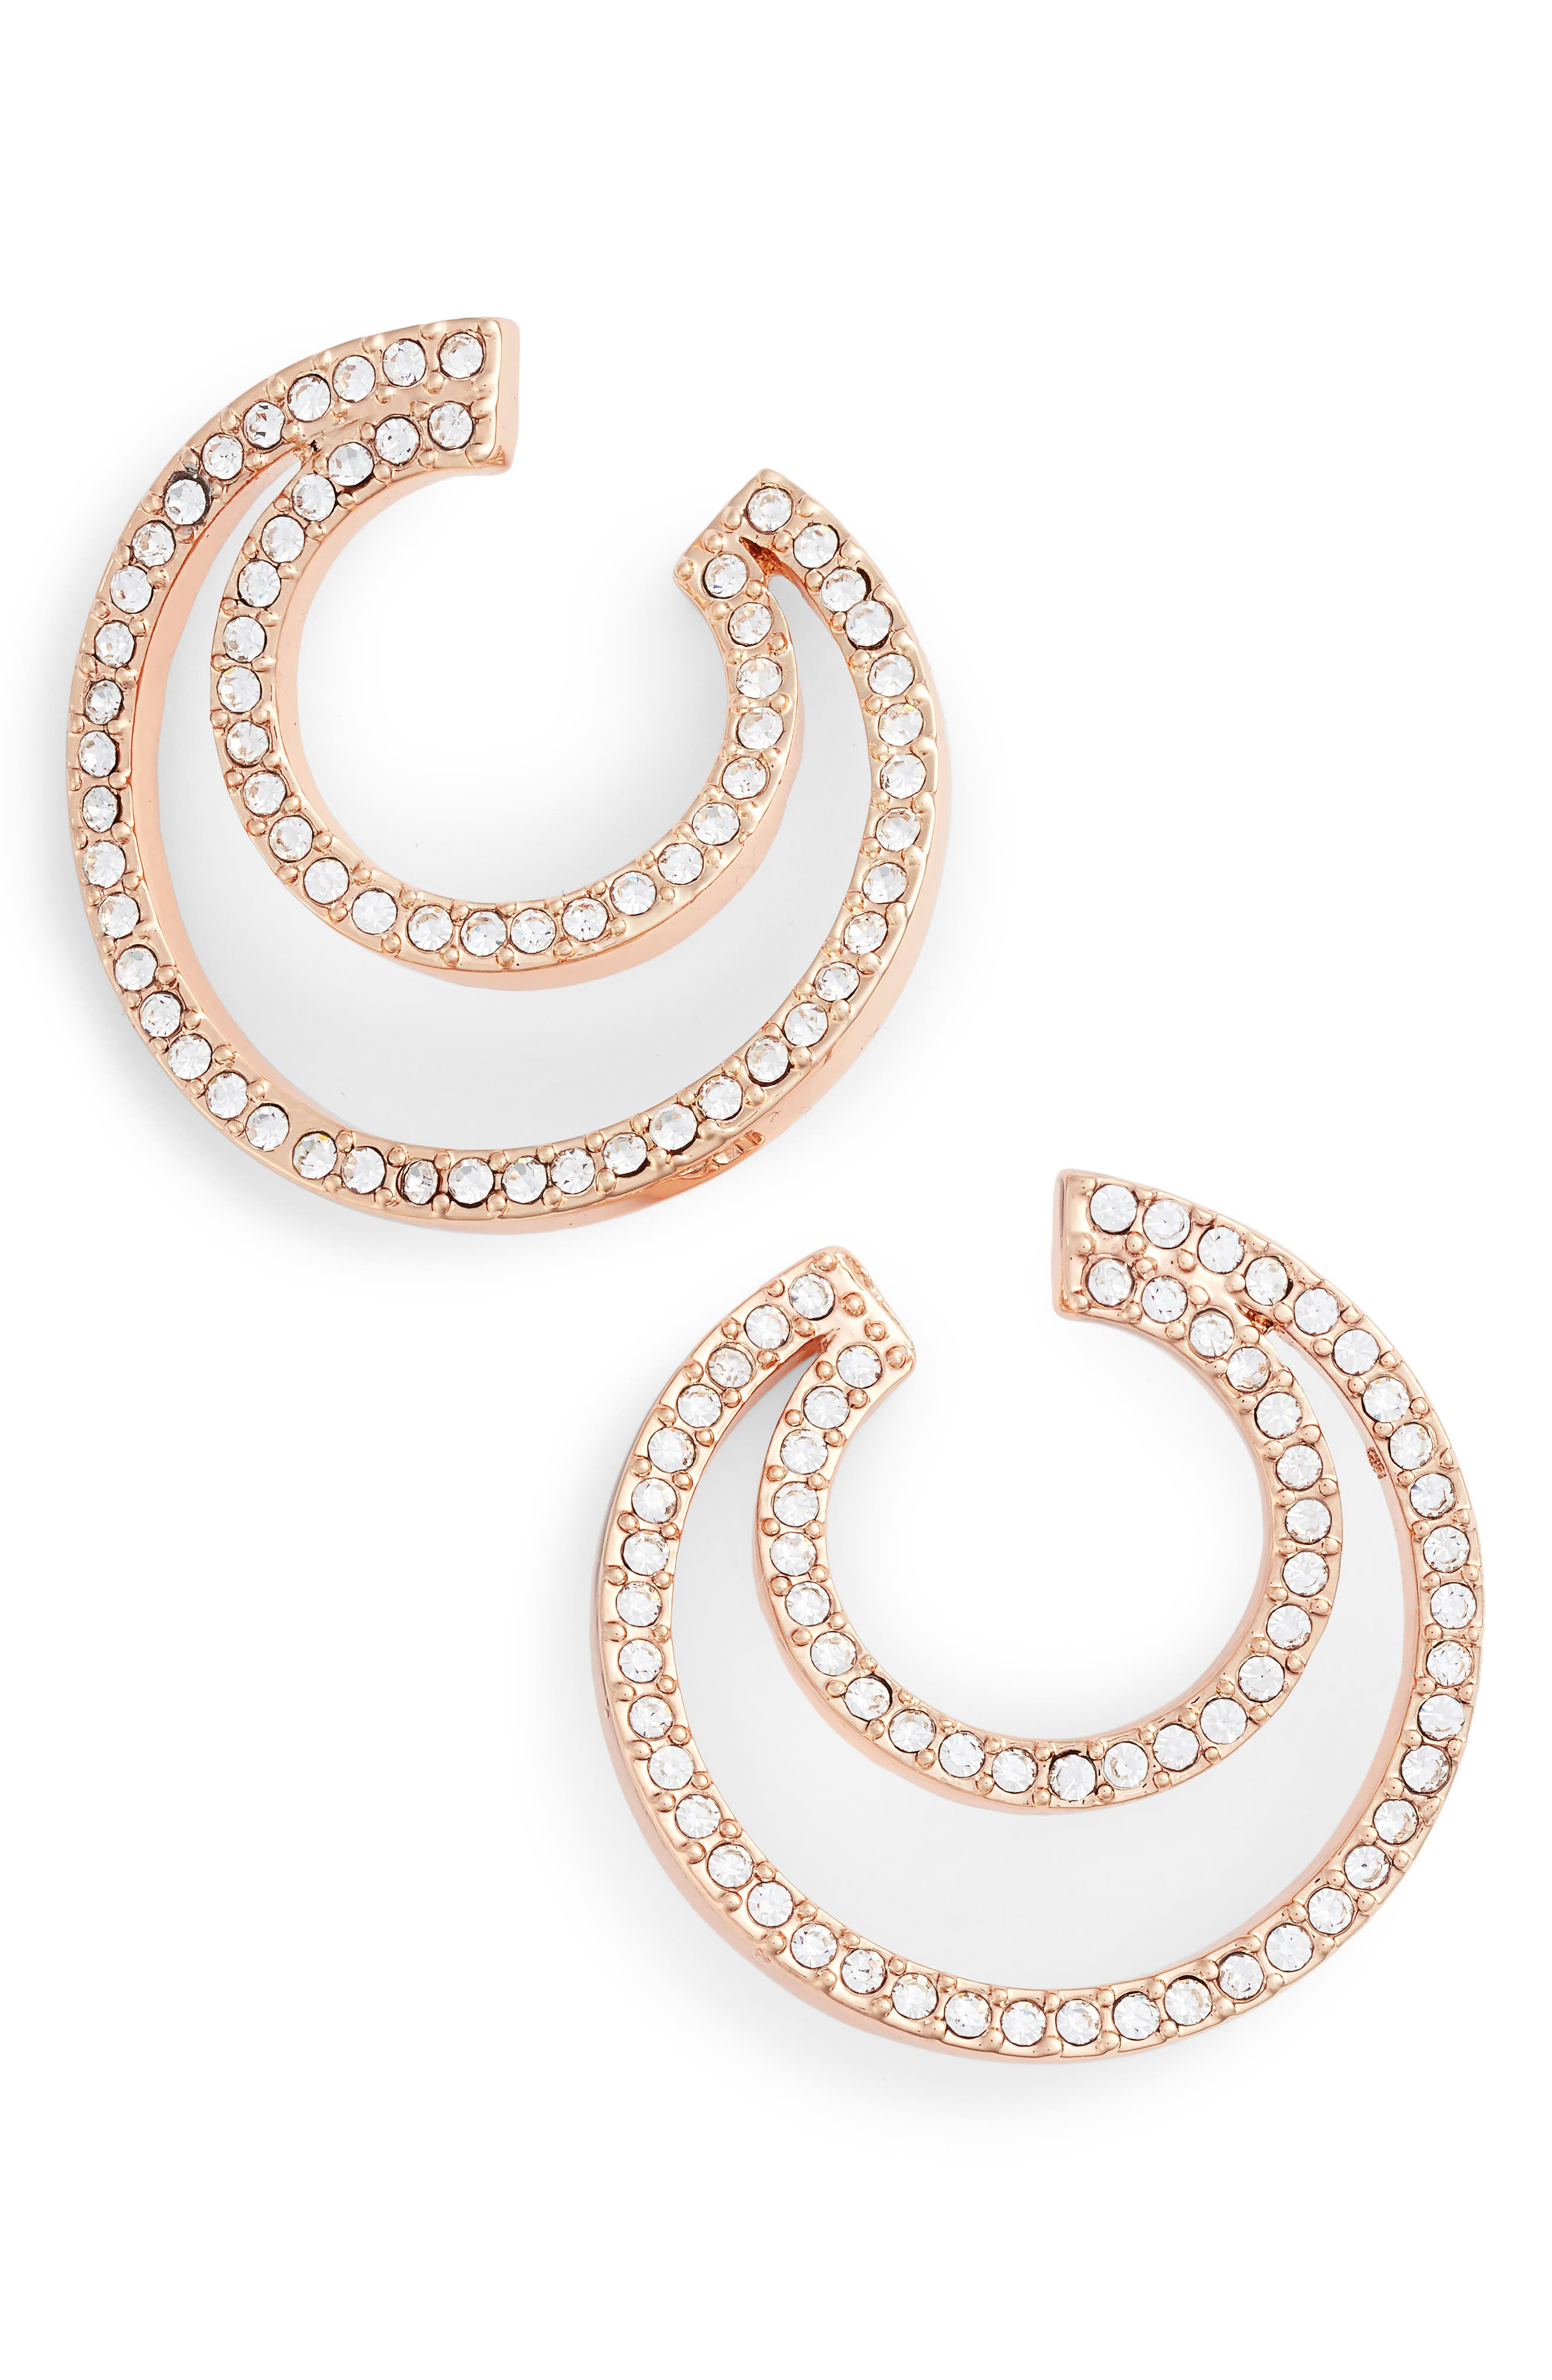 Curved Hoop Earrings,                             Main thumbnail 1, color,                             Rose Gold